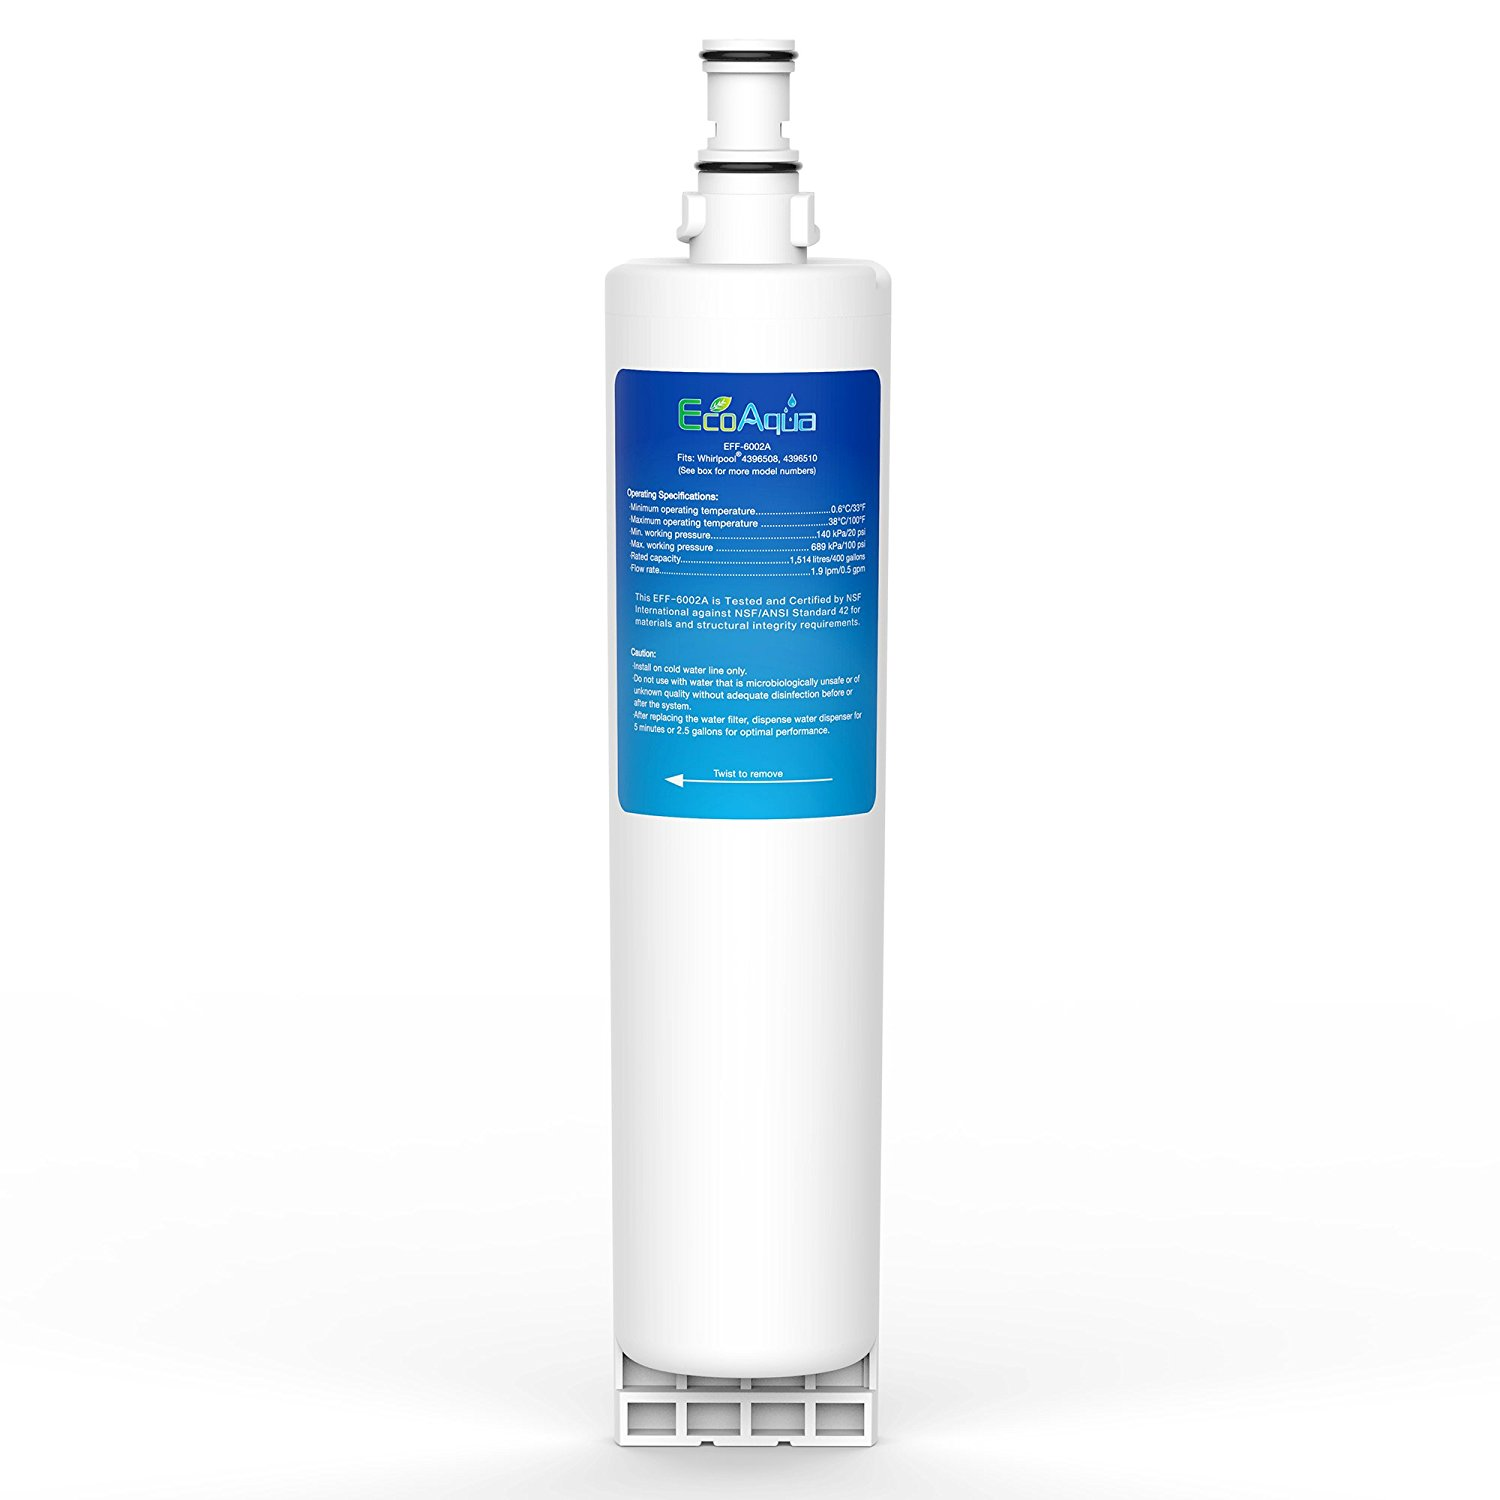 EFF-6002A Refrigerator water filter for Whirlpool